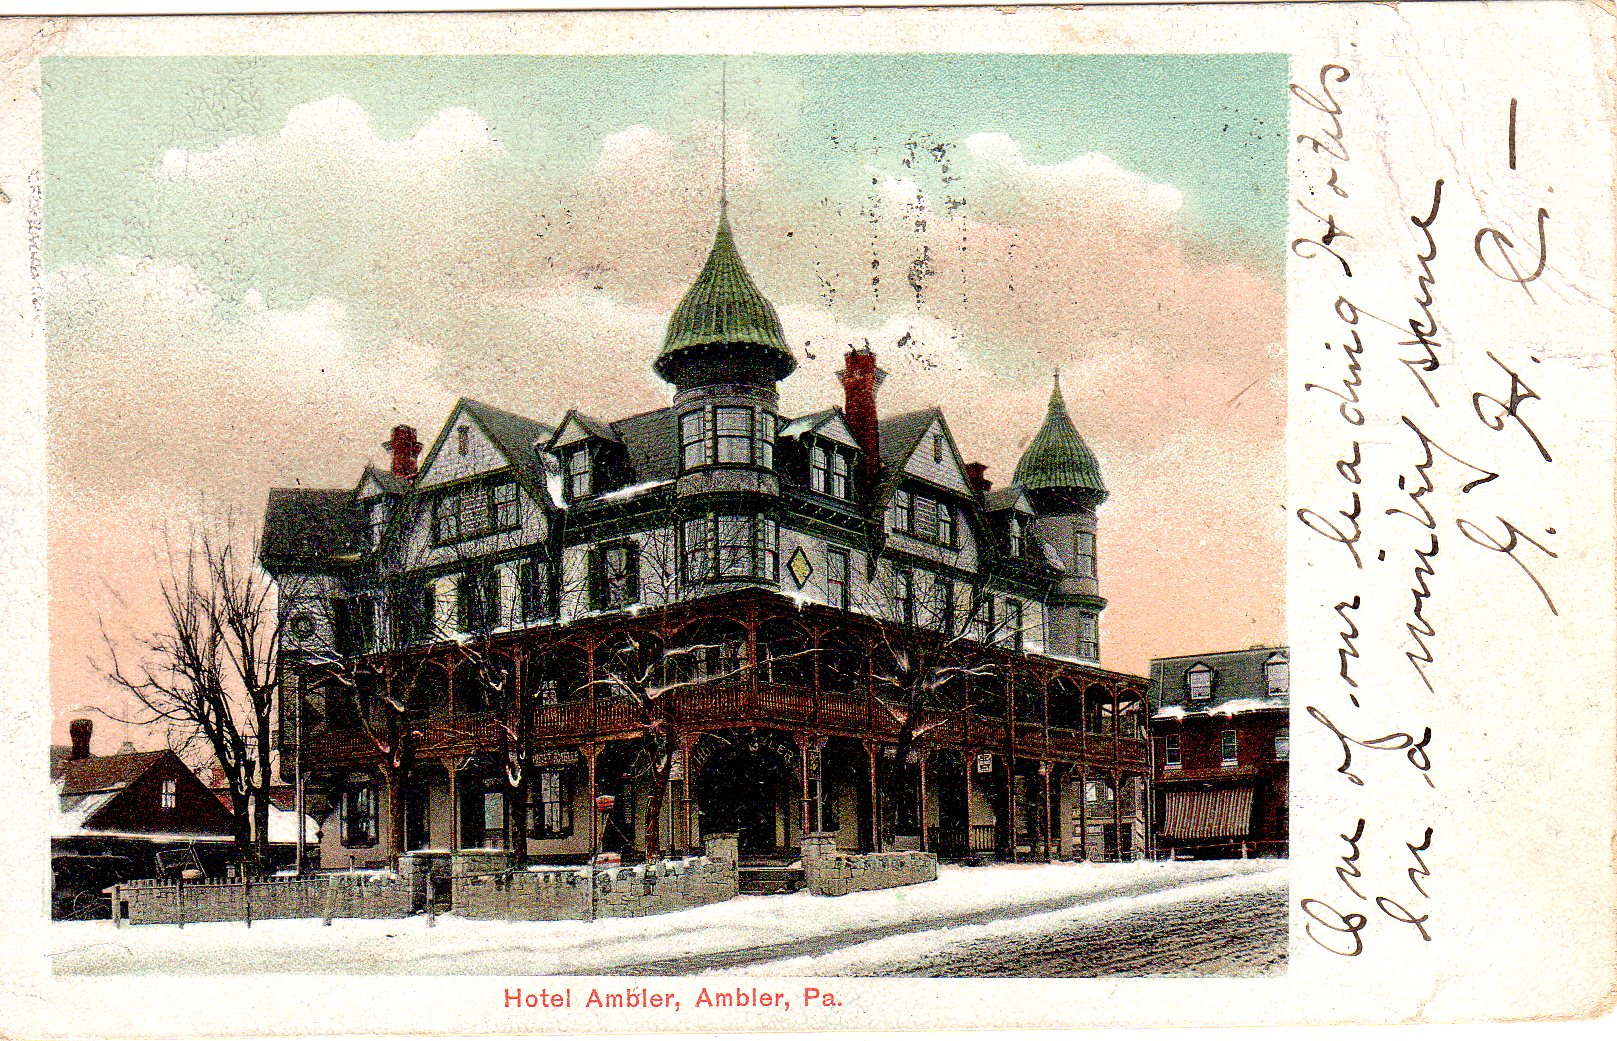 Post Card Collection (E Simon)_2682_14_Hotel Ambler, Ambler, Pa_7 Sep 1906